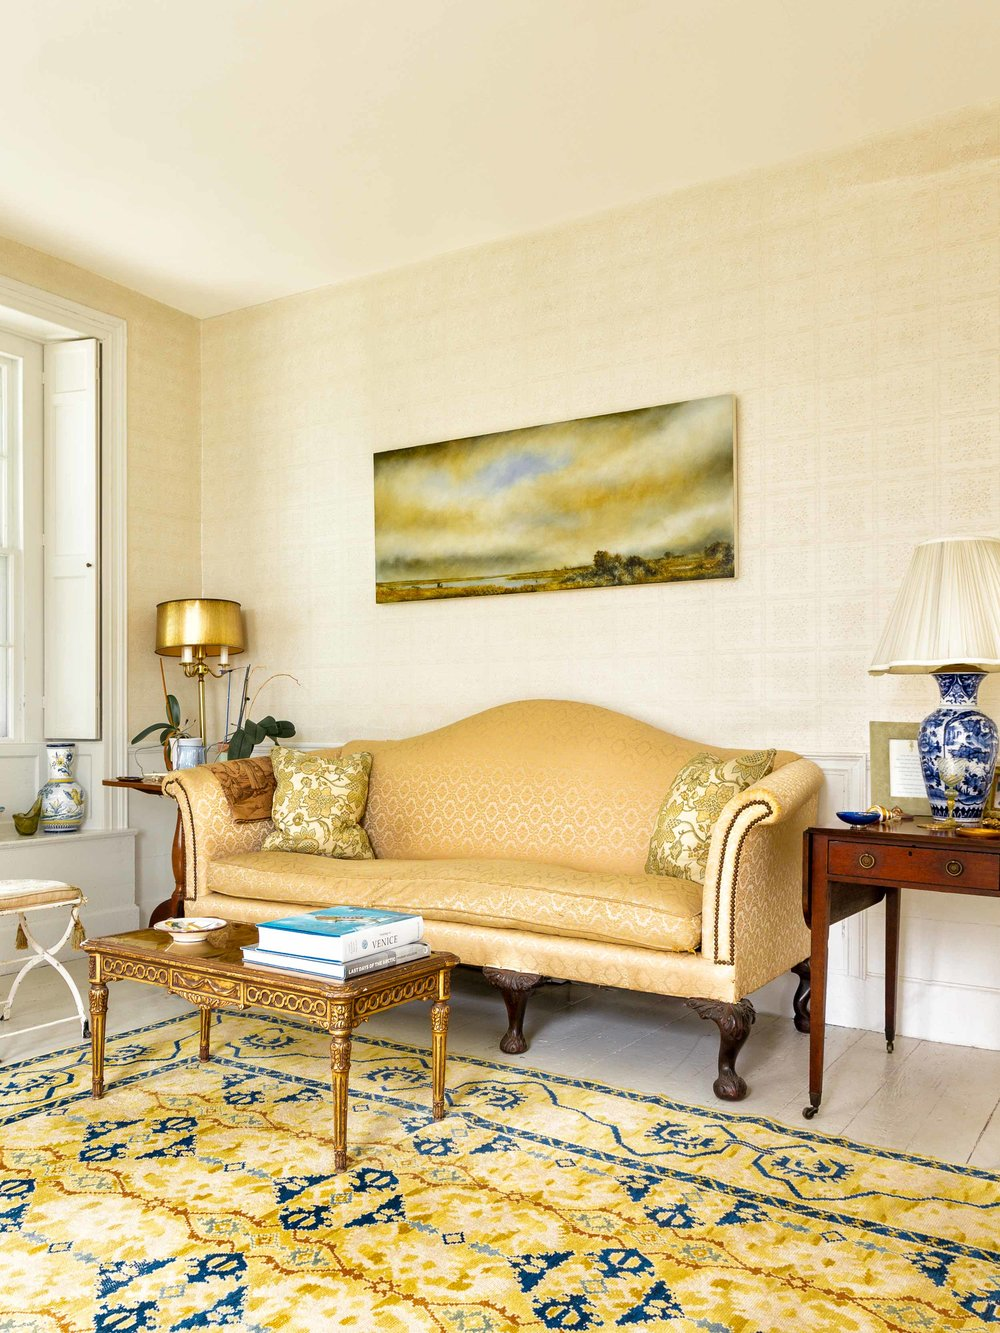 A landscape of a Delaware marsh by Peter Brooke hangs above the settee.